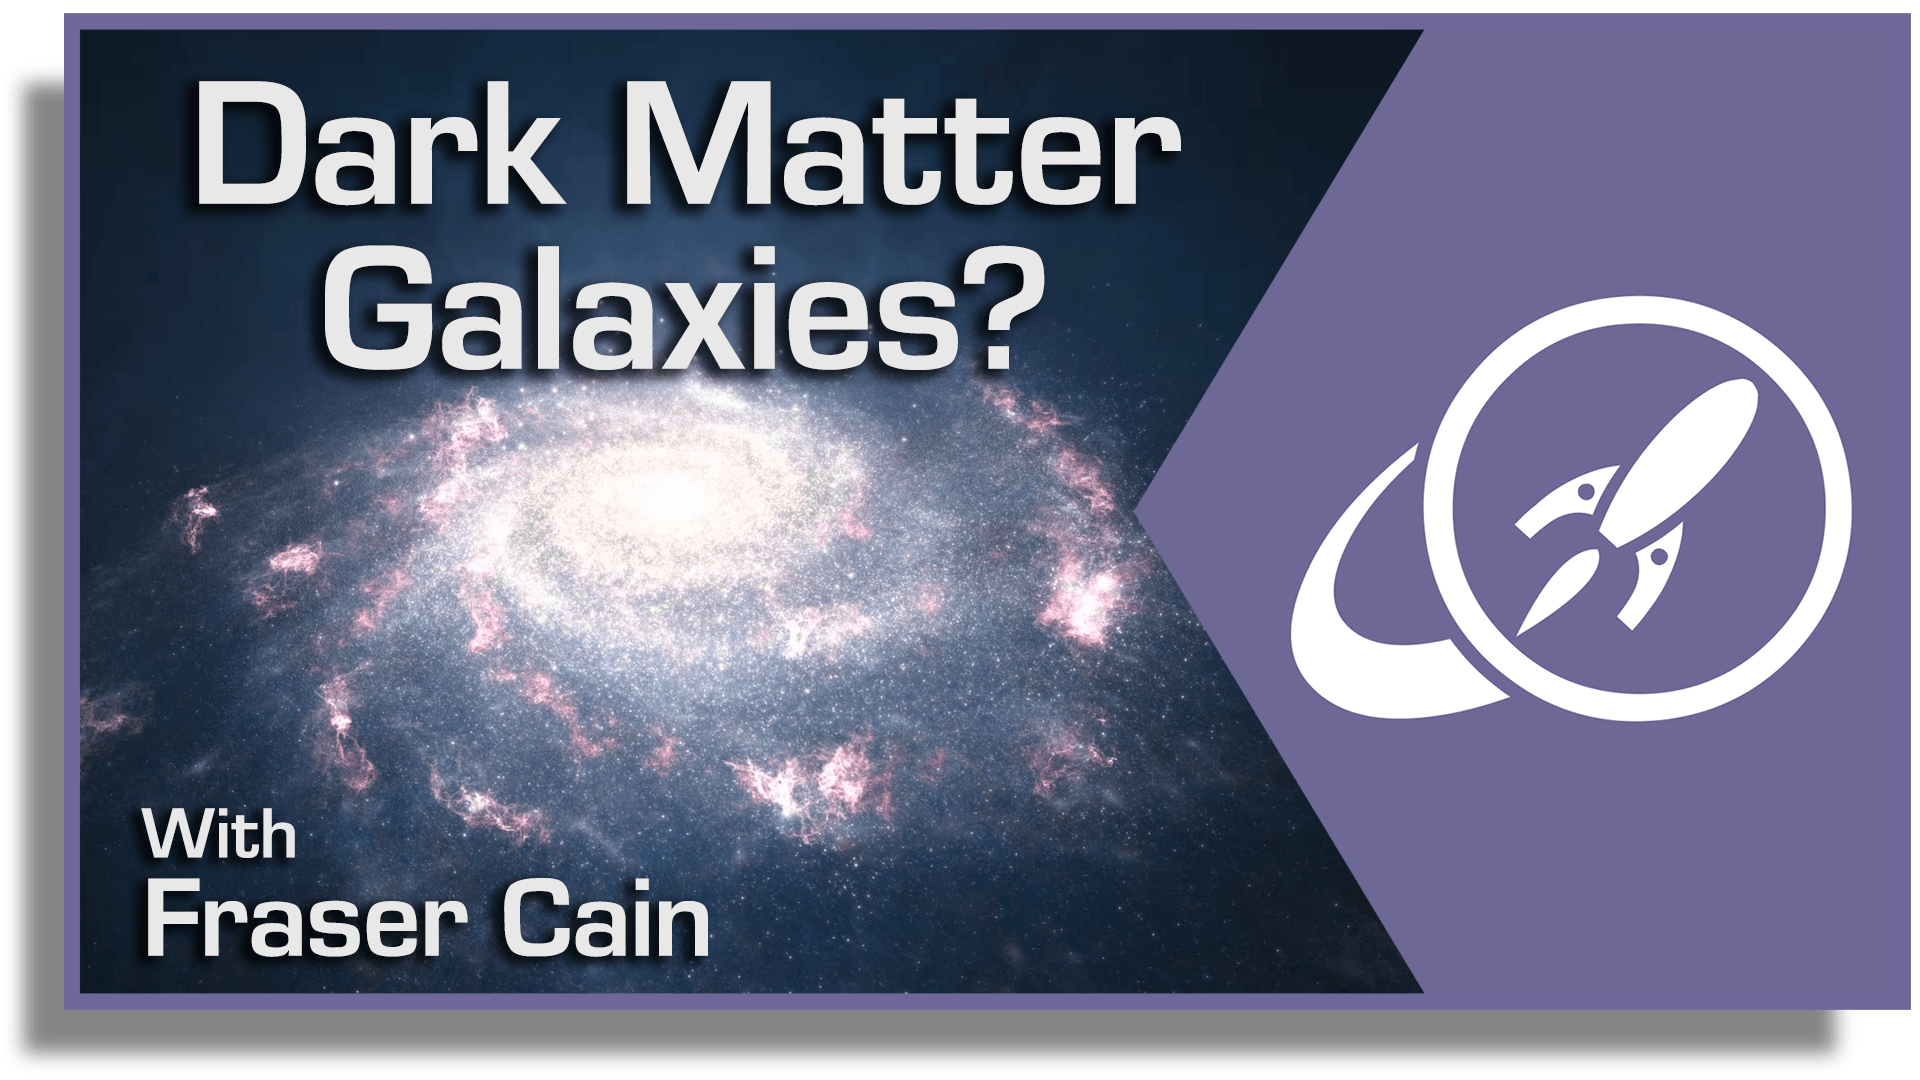 We Know There S Dark Matter And There Are Galaxies But